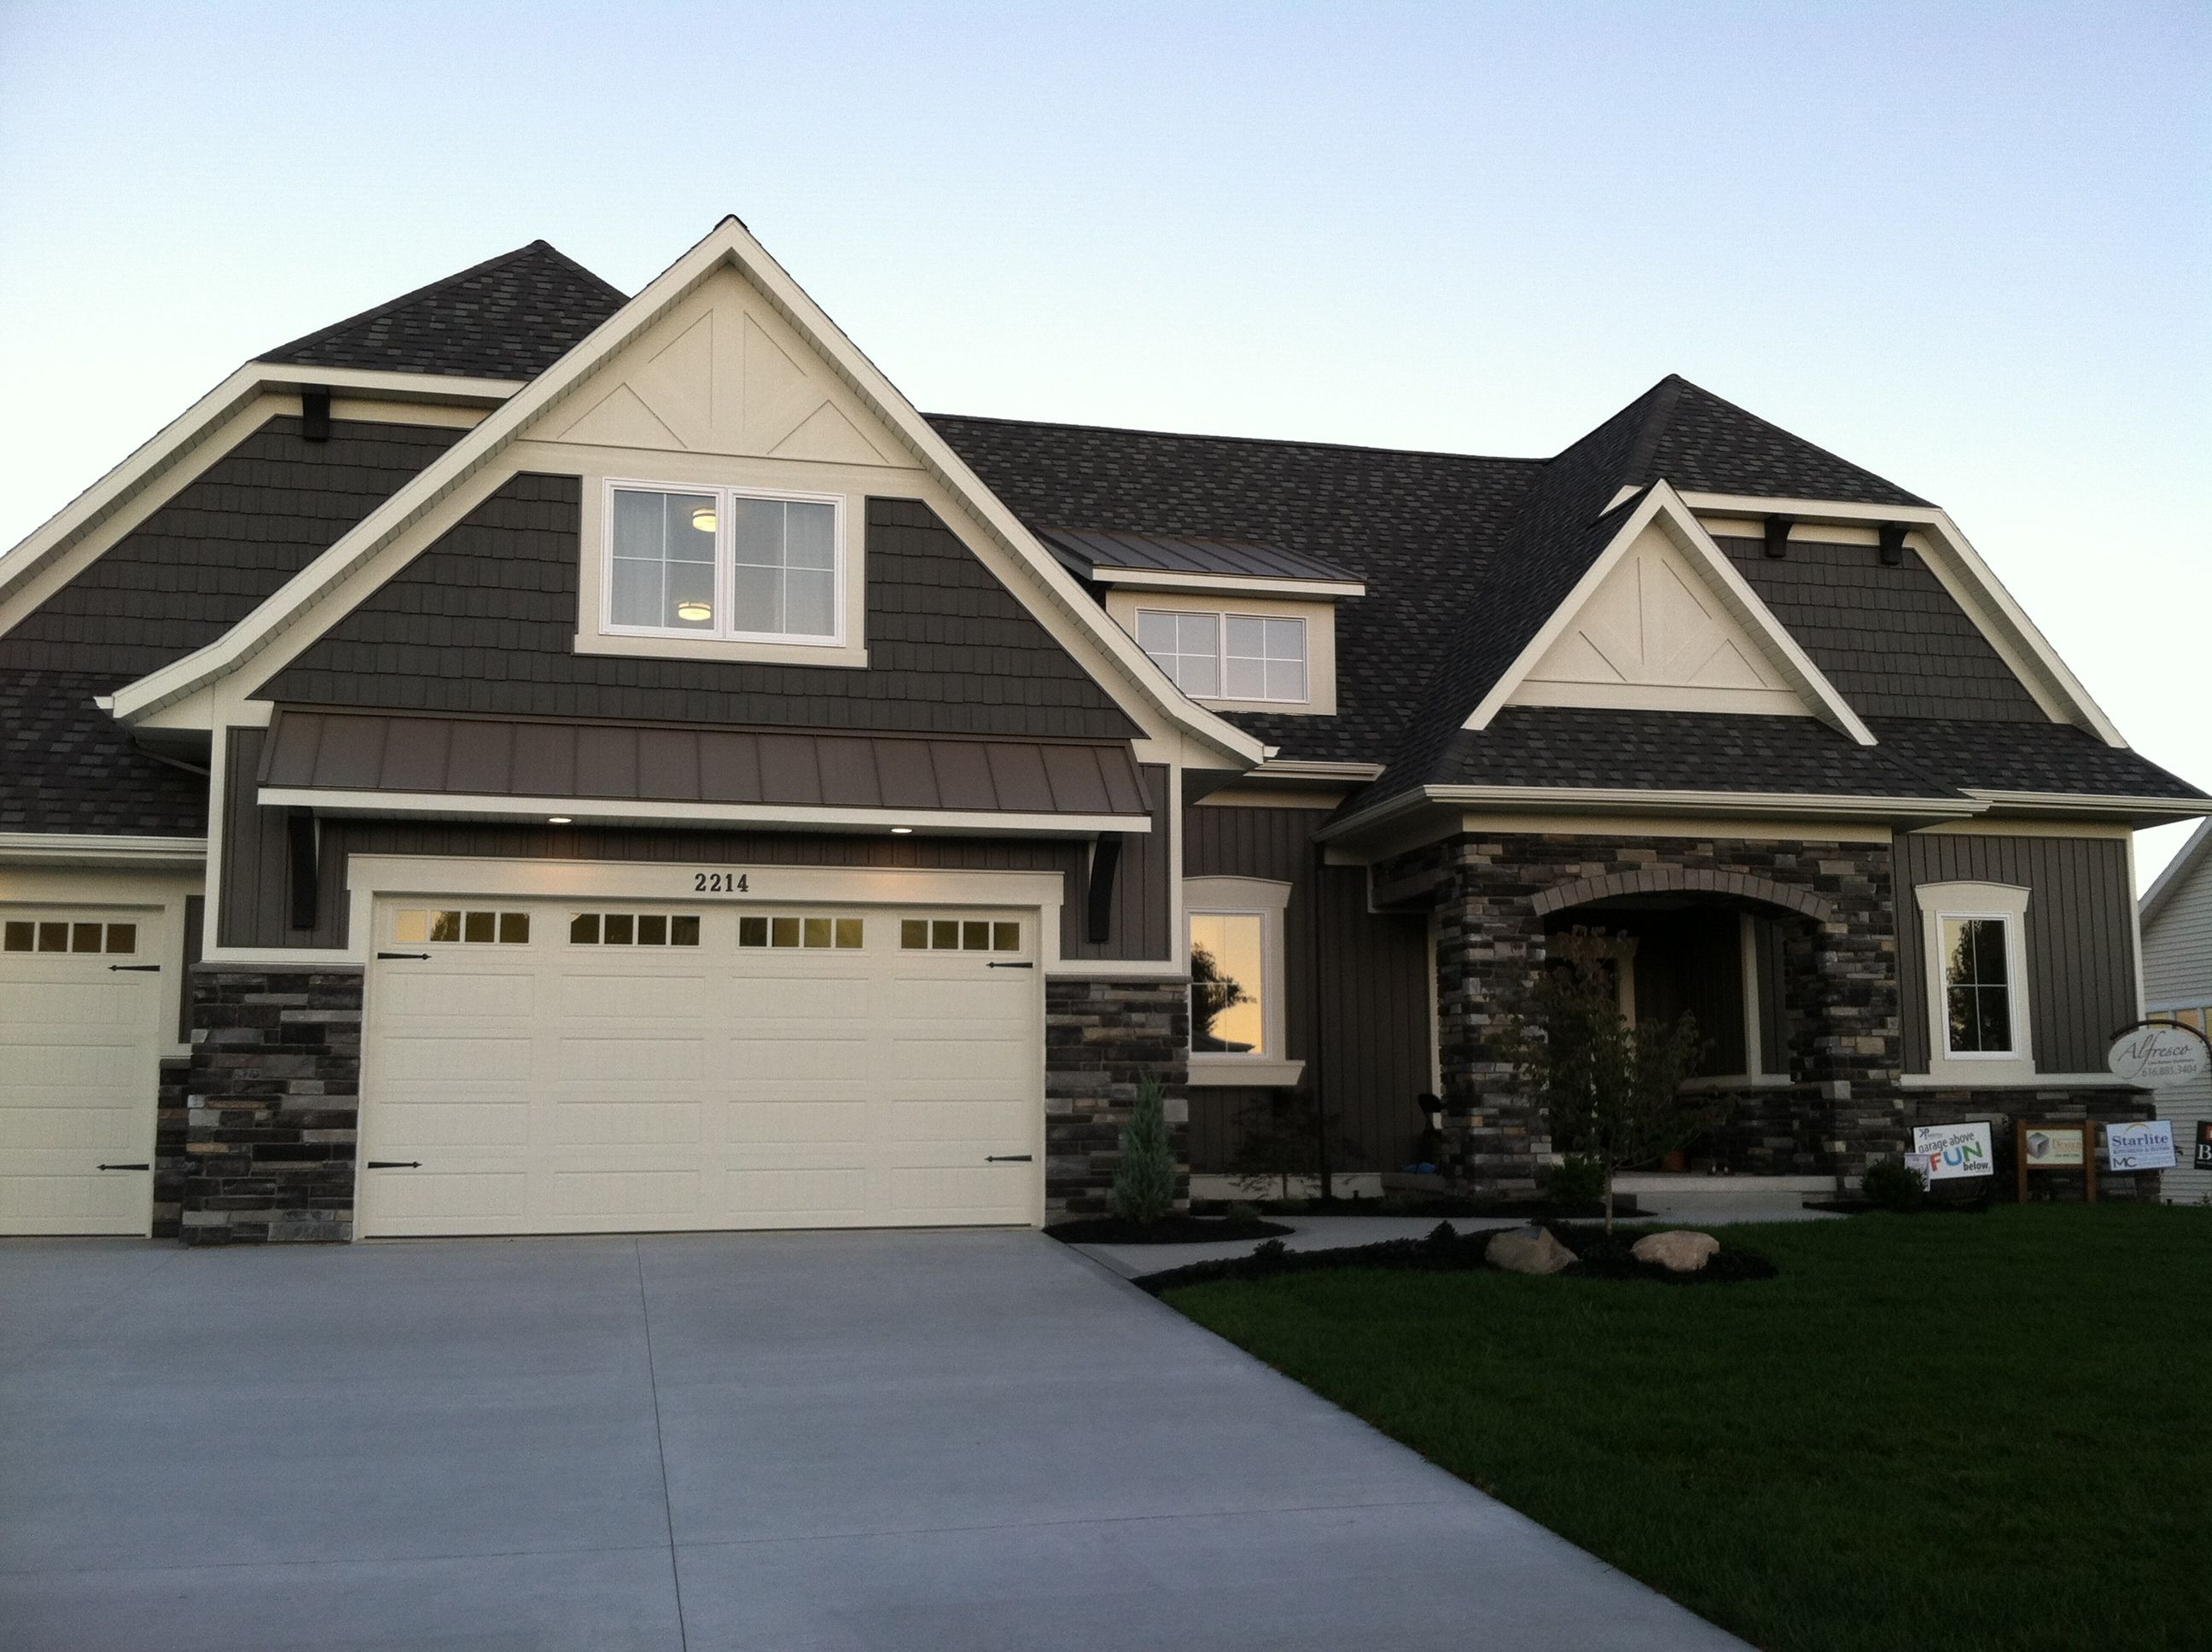 gallery of exterior paint schemes stuccoexterior paint schemes stucco